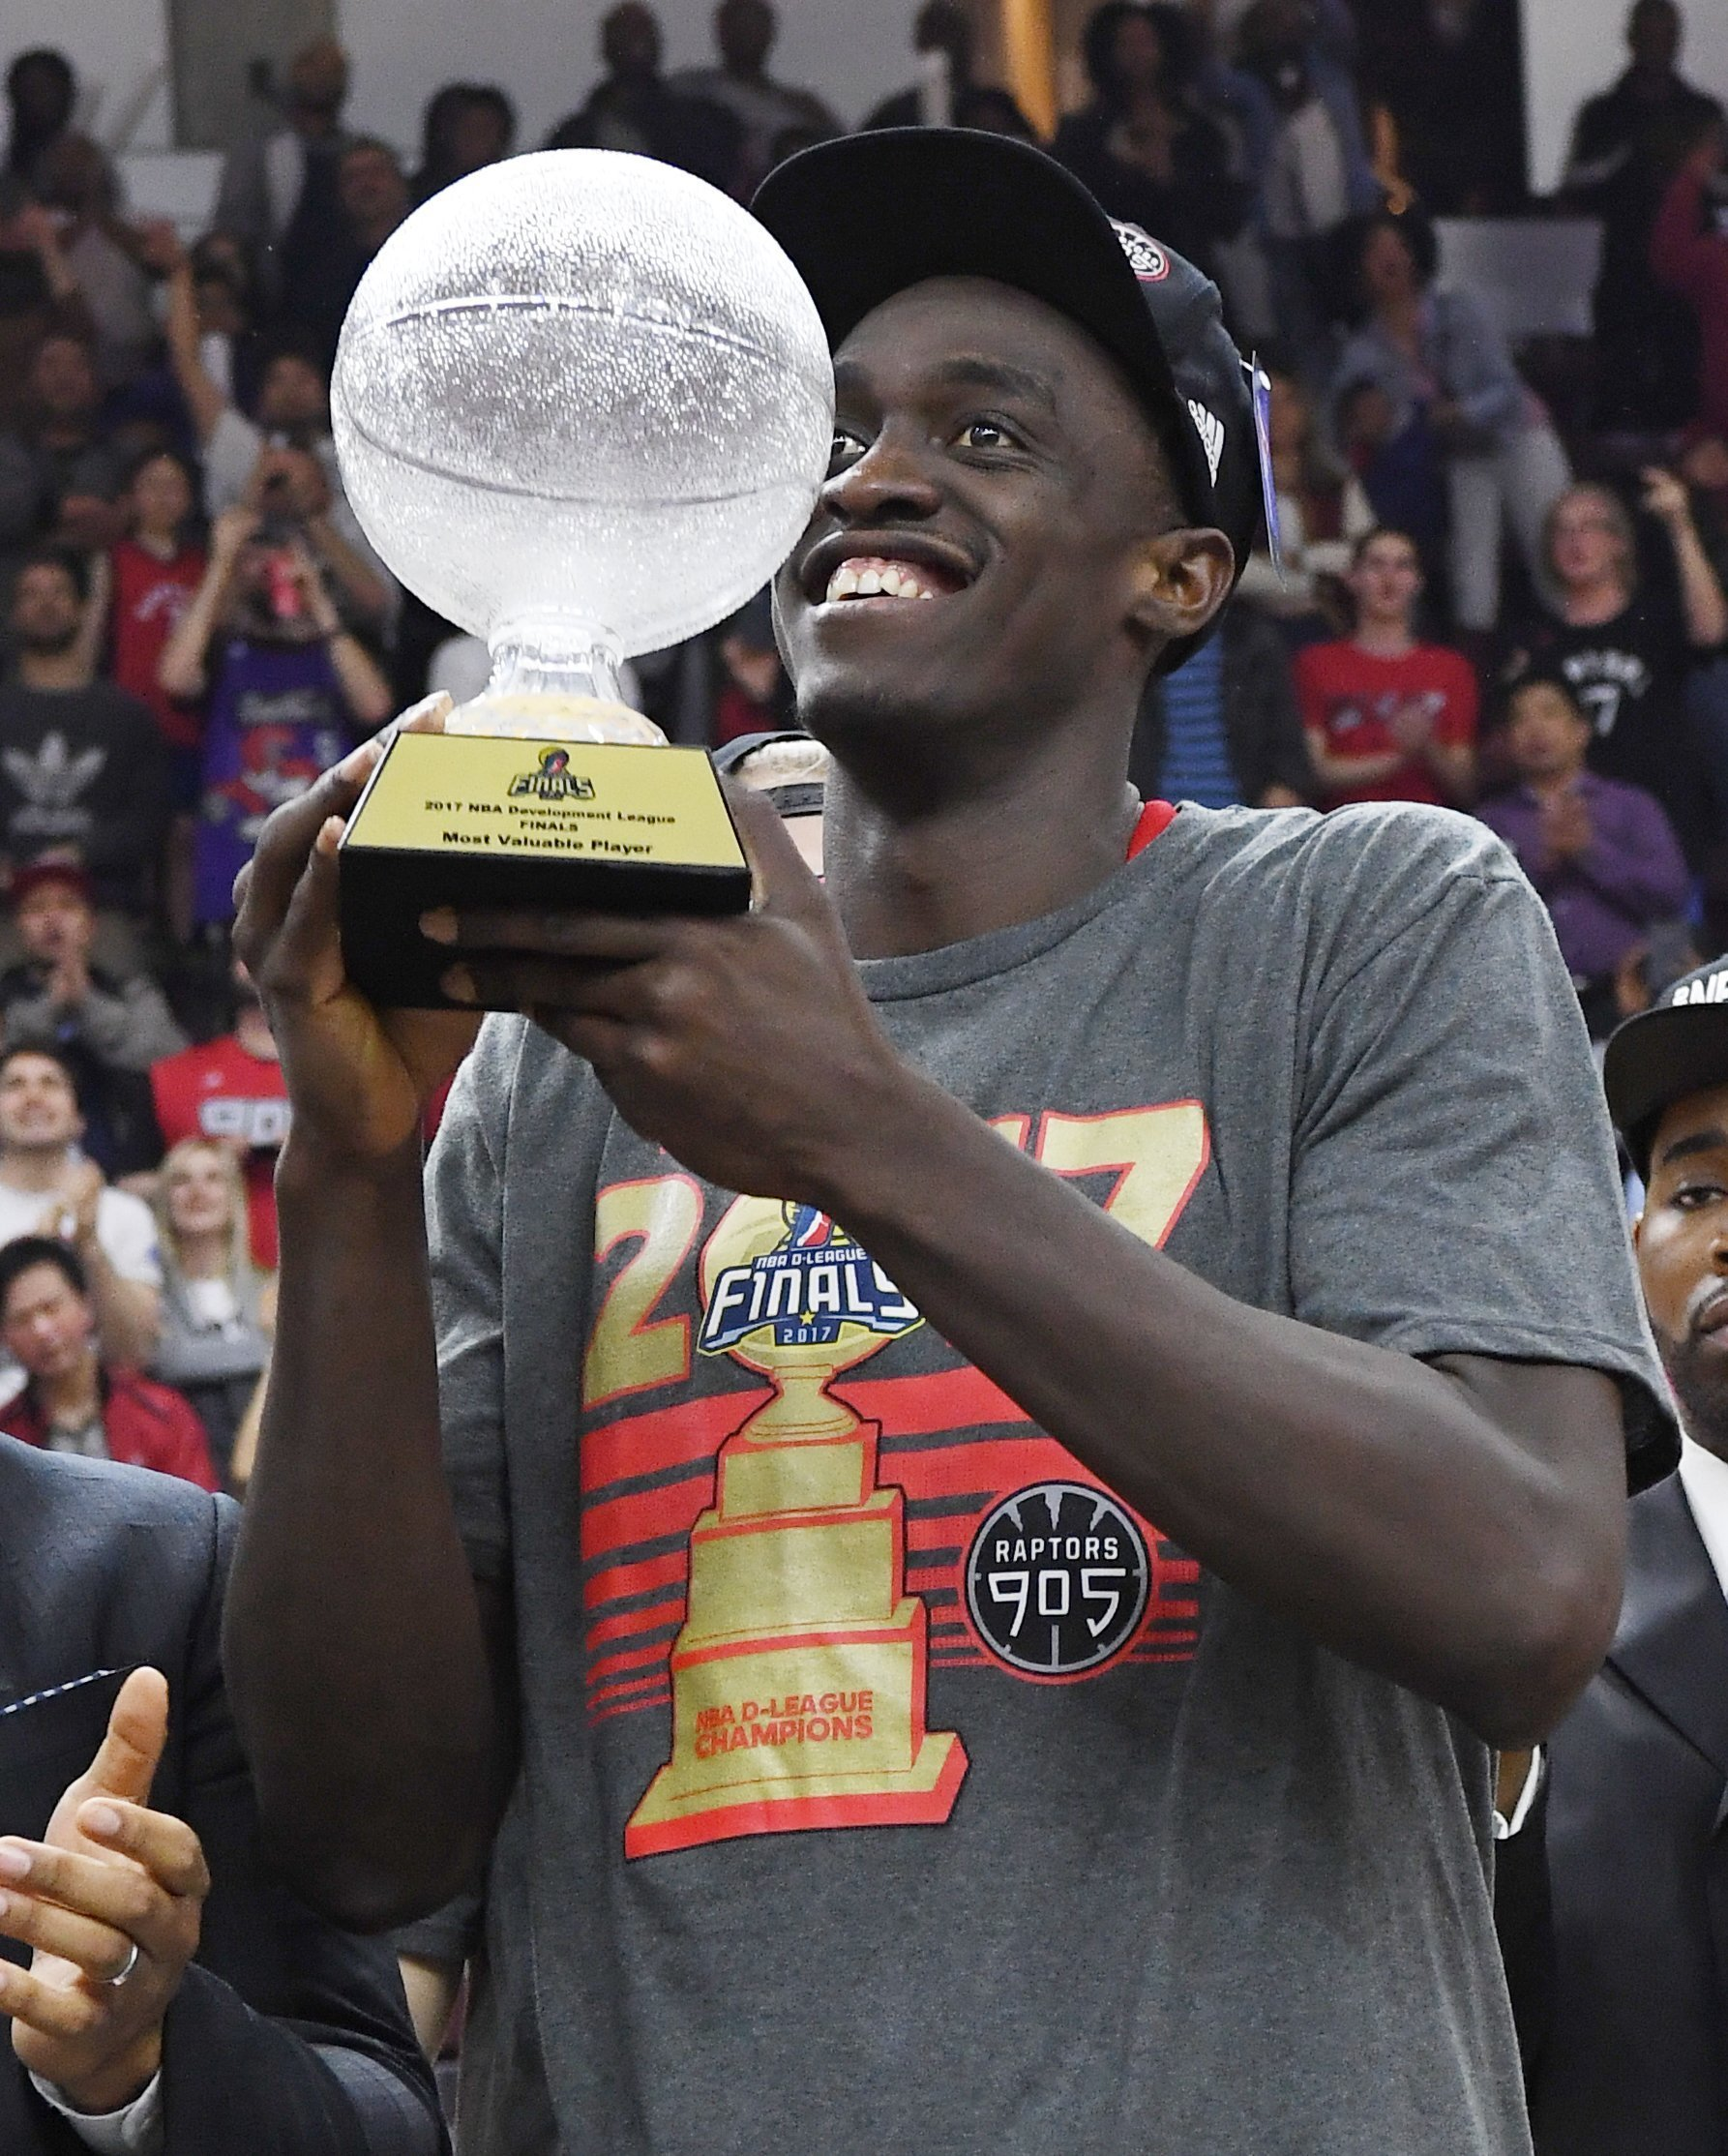 MISSISSAUGA, CANADA - APRIL 27:  Pascal Siakam #43 of the Raptors 905 holds the MVP trophy after they defeated the Rio Grande Valley Vipers in Game Three of the D-League Finals to win the championship at the Hershey Centre on April 27, 2017 in Mississauga, Ontario, Canada. NOTE TO USER: User expressly acknowledges and agrees that, by downloading and/or using this photograph, user is consenting to the terms and conditions of the Getty Images License Agreement. Mandatory Copyright Notice: Copyright 2017 NBAE (Photo by Ron Turenne/NBAE via Getty Images)